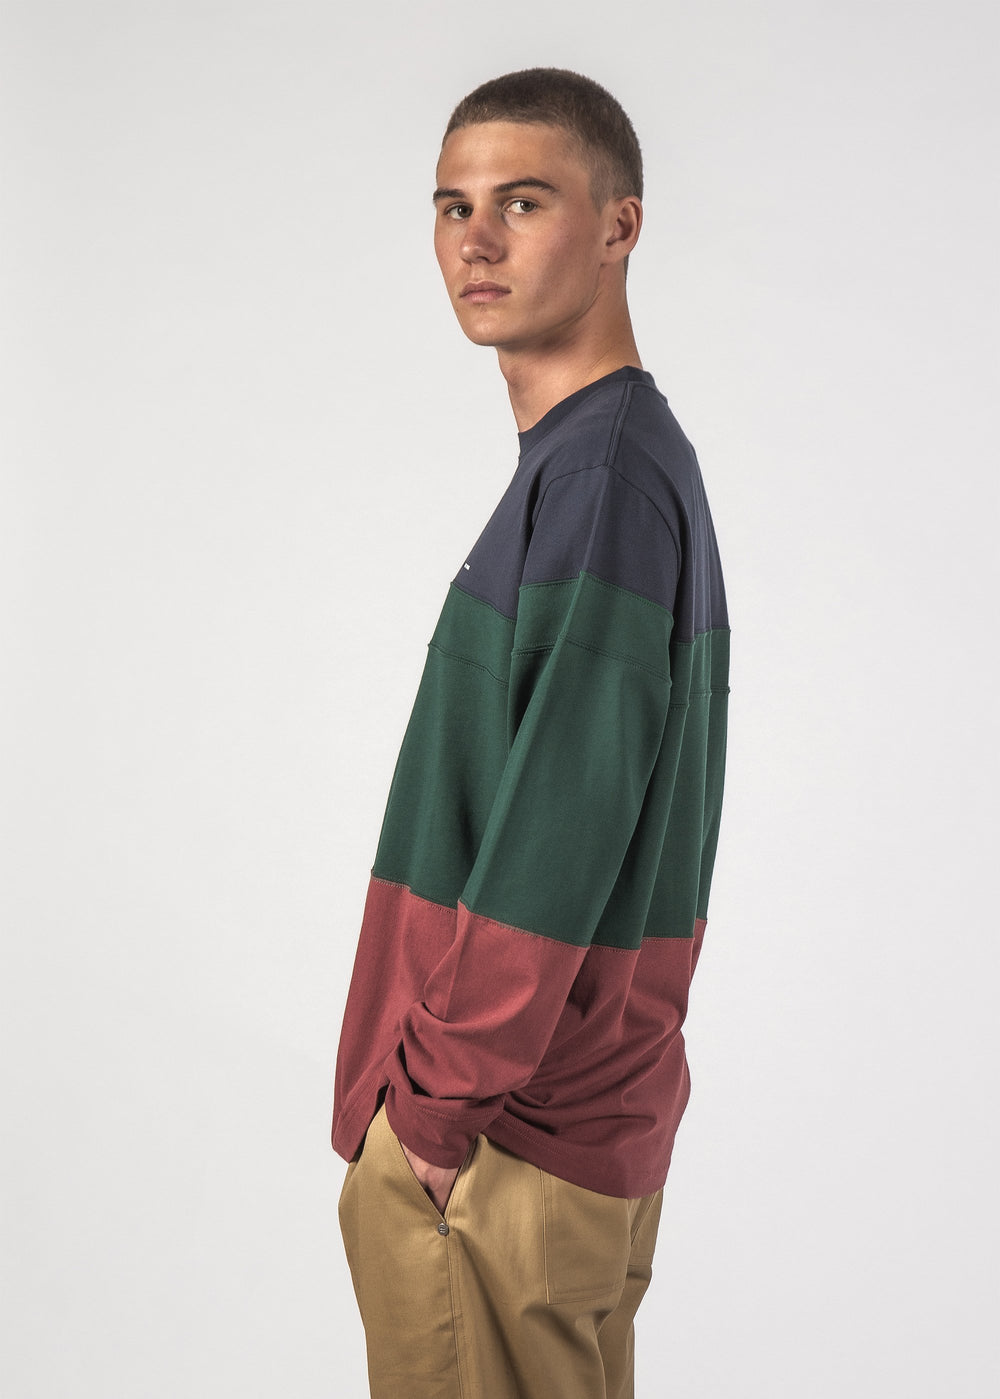 DICED L/S TEE - NAVY/FOREST/SIENNA